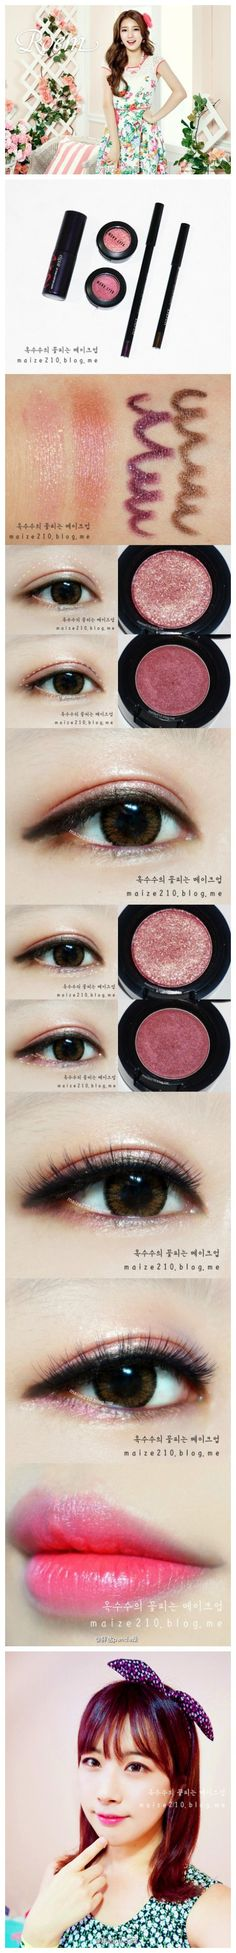 Asian make up Asian Makeup Tutorials, Korean Makeup Tips, Beauty Tutorials, Korean Beauty, Asian Make Up, Korean Make Up, Eye Make Up, Asian Makeup Looks, Asian Eye Makeup